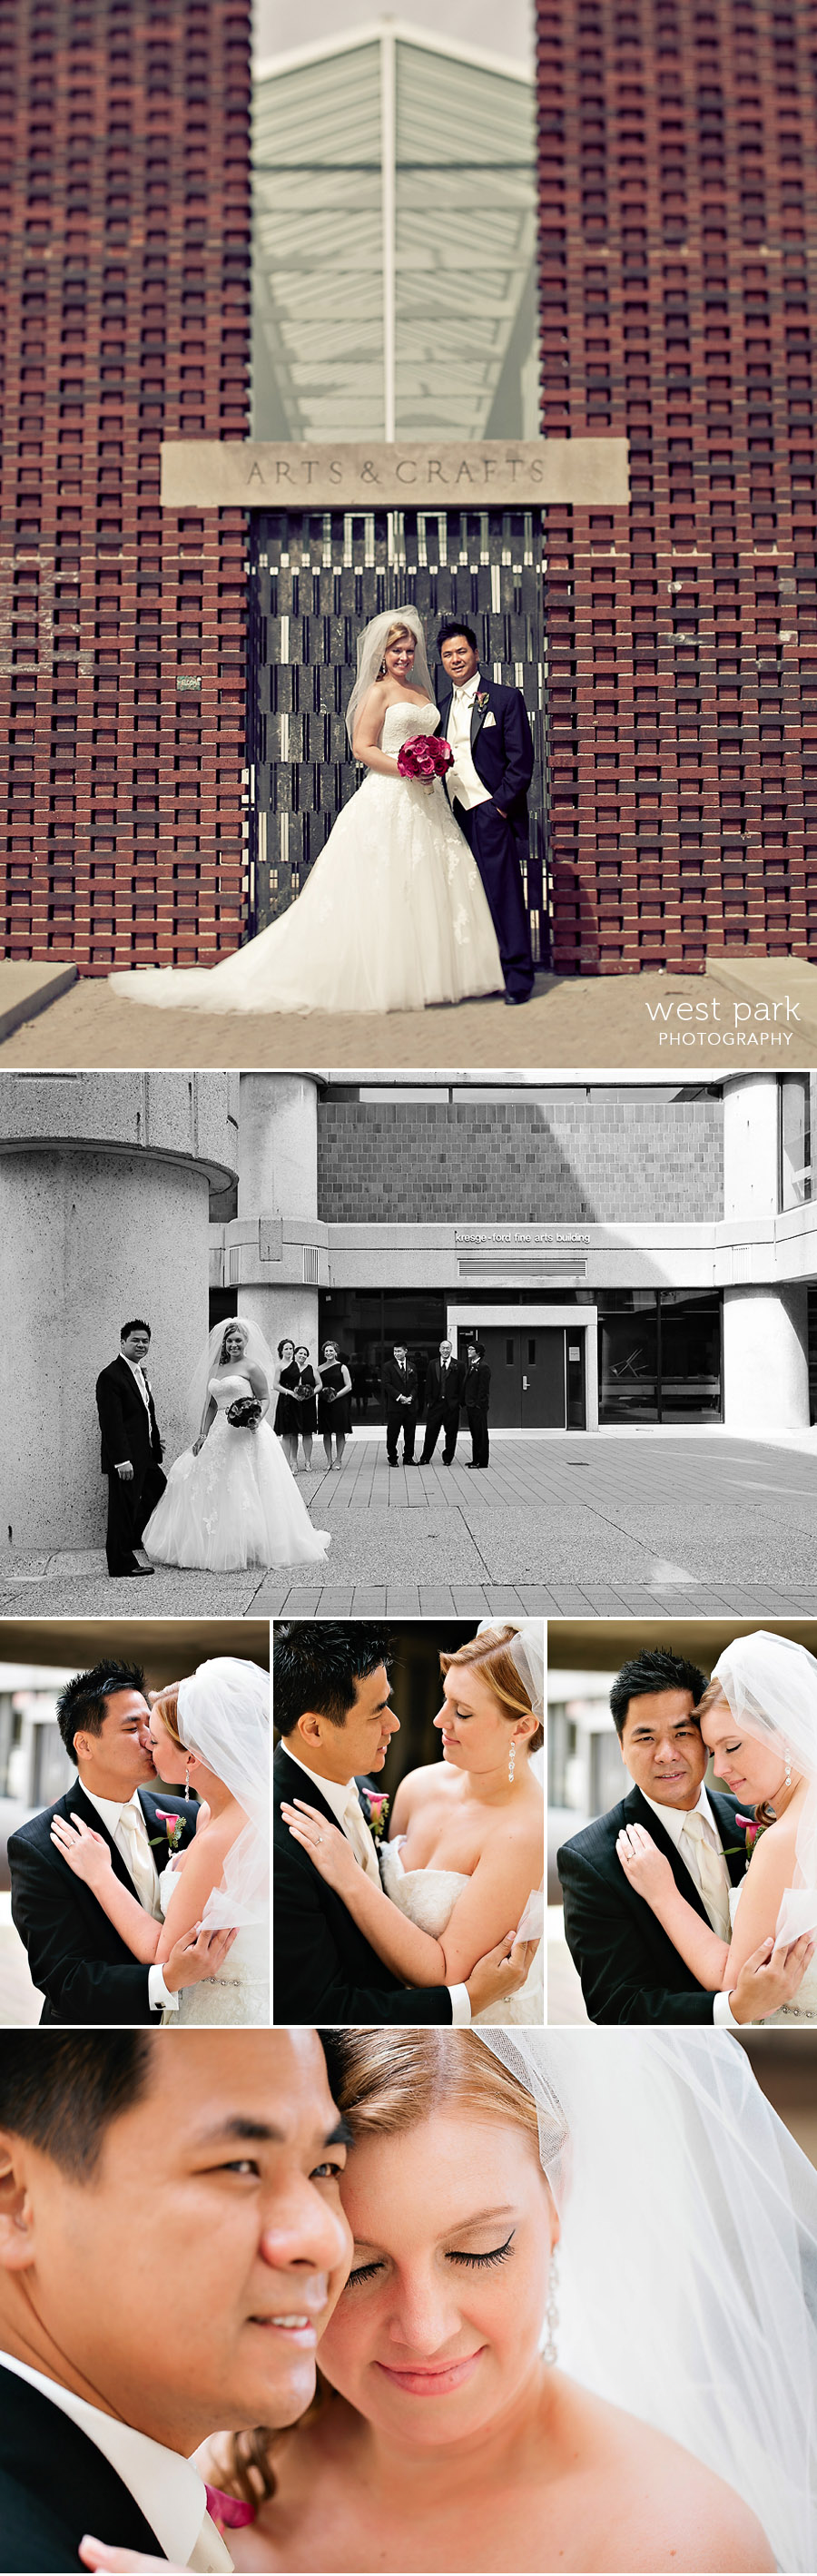 detroit wedding 01 Keri + Sam: Ovation Wedding